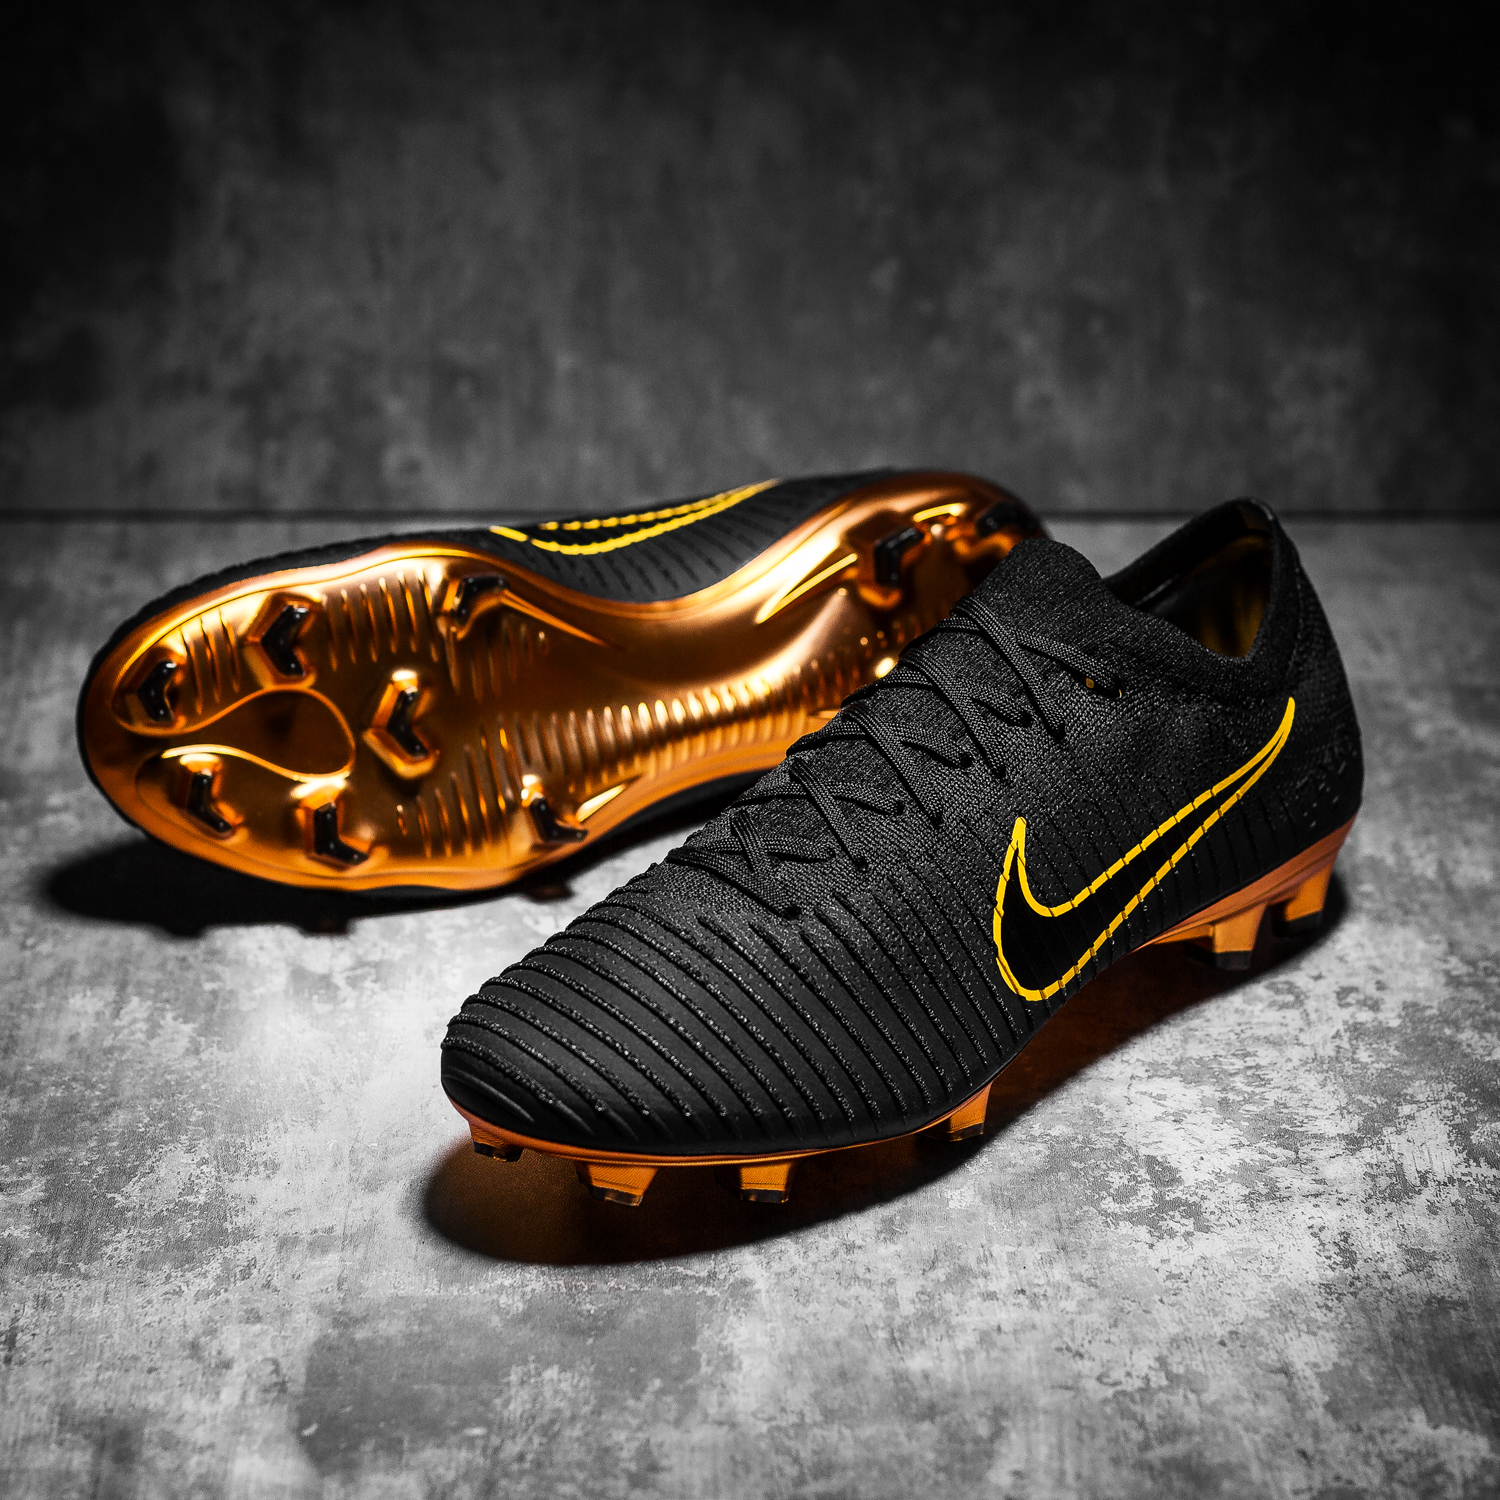 official photos 840b8 11fed Meet the insanely limited Nike Mercurial Flyknit Ultra